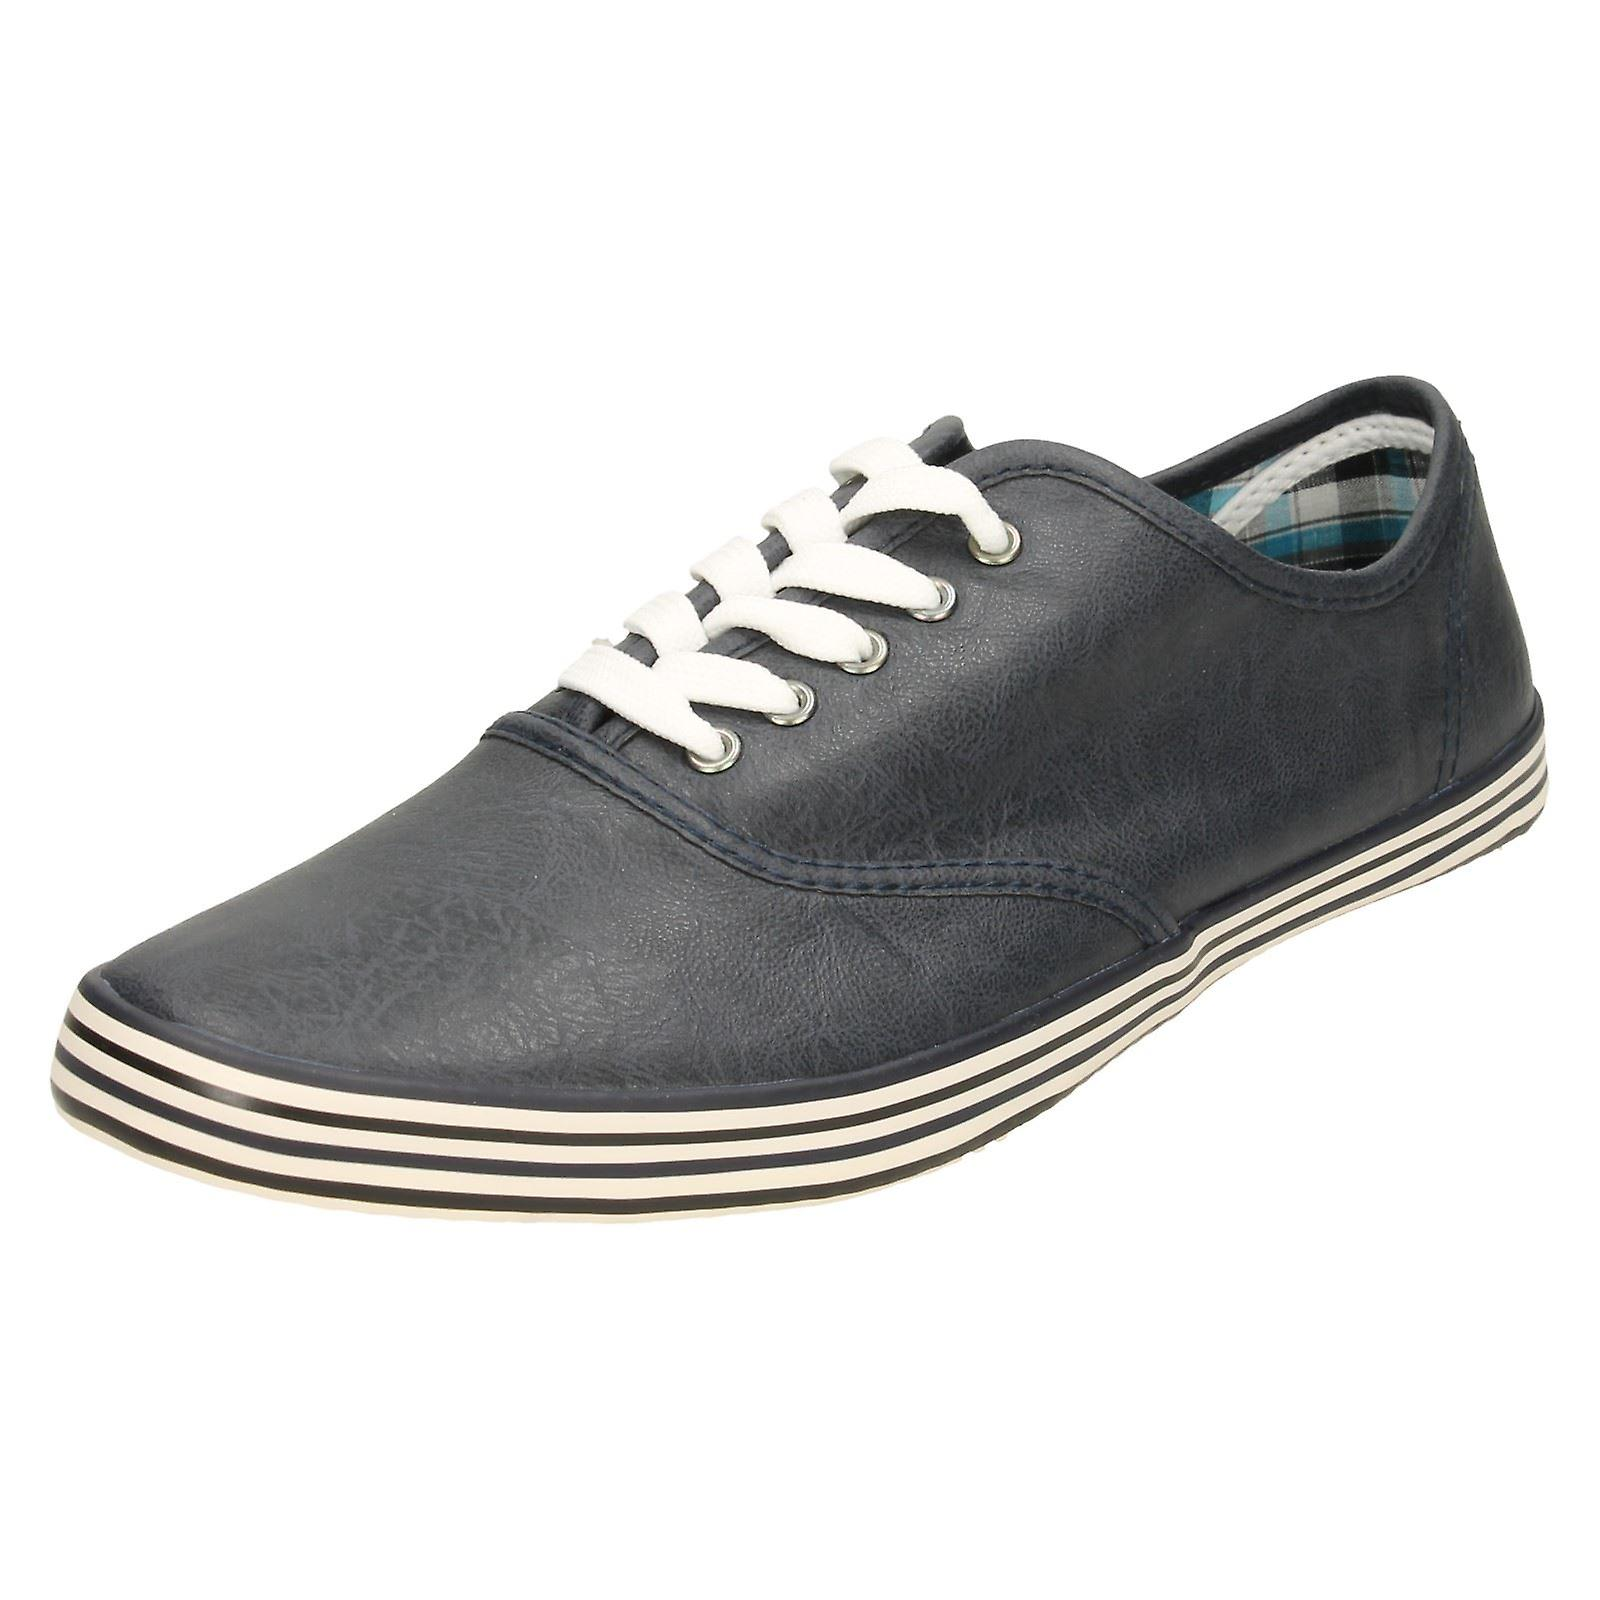 Mens Spot On Flat Lace Up Shoe